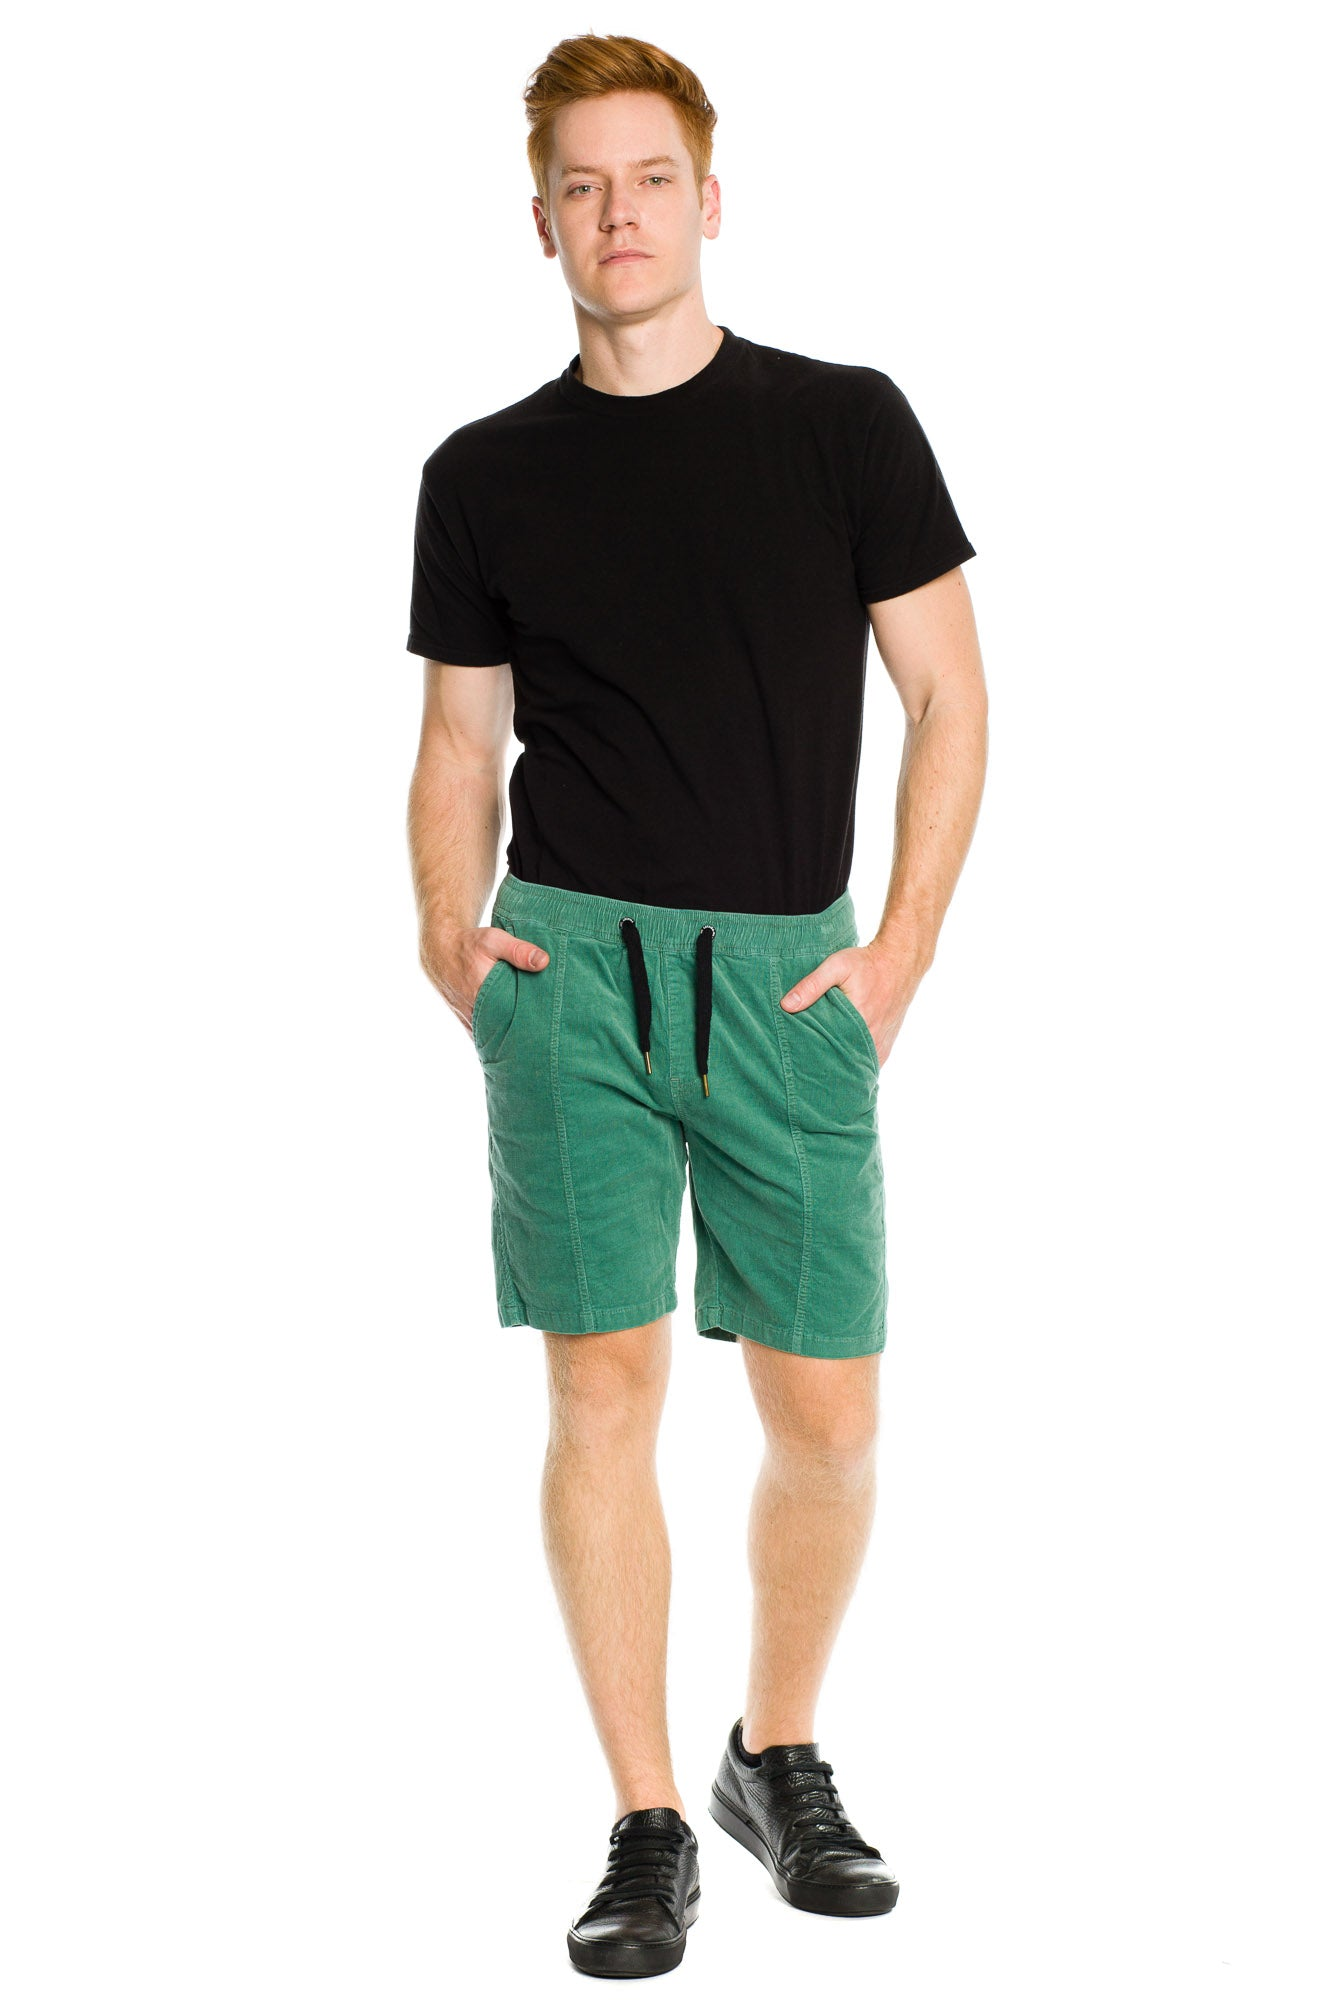 Johnson Short - Sage Green - Ezekiel Clothing